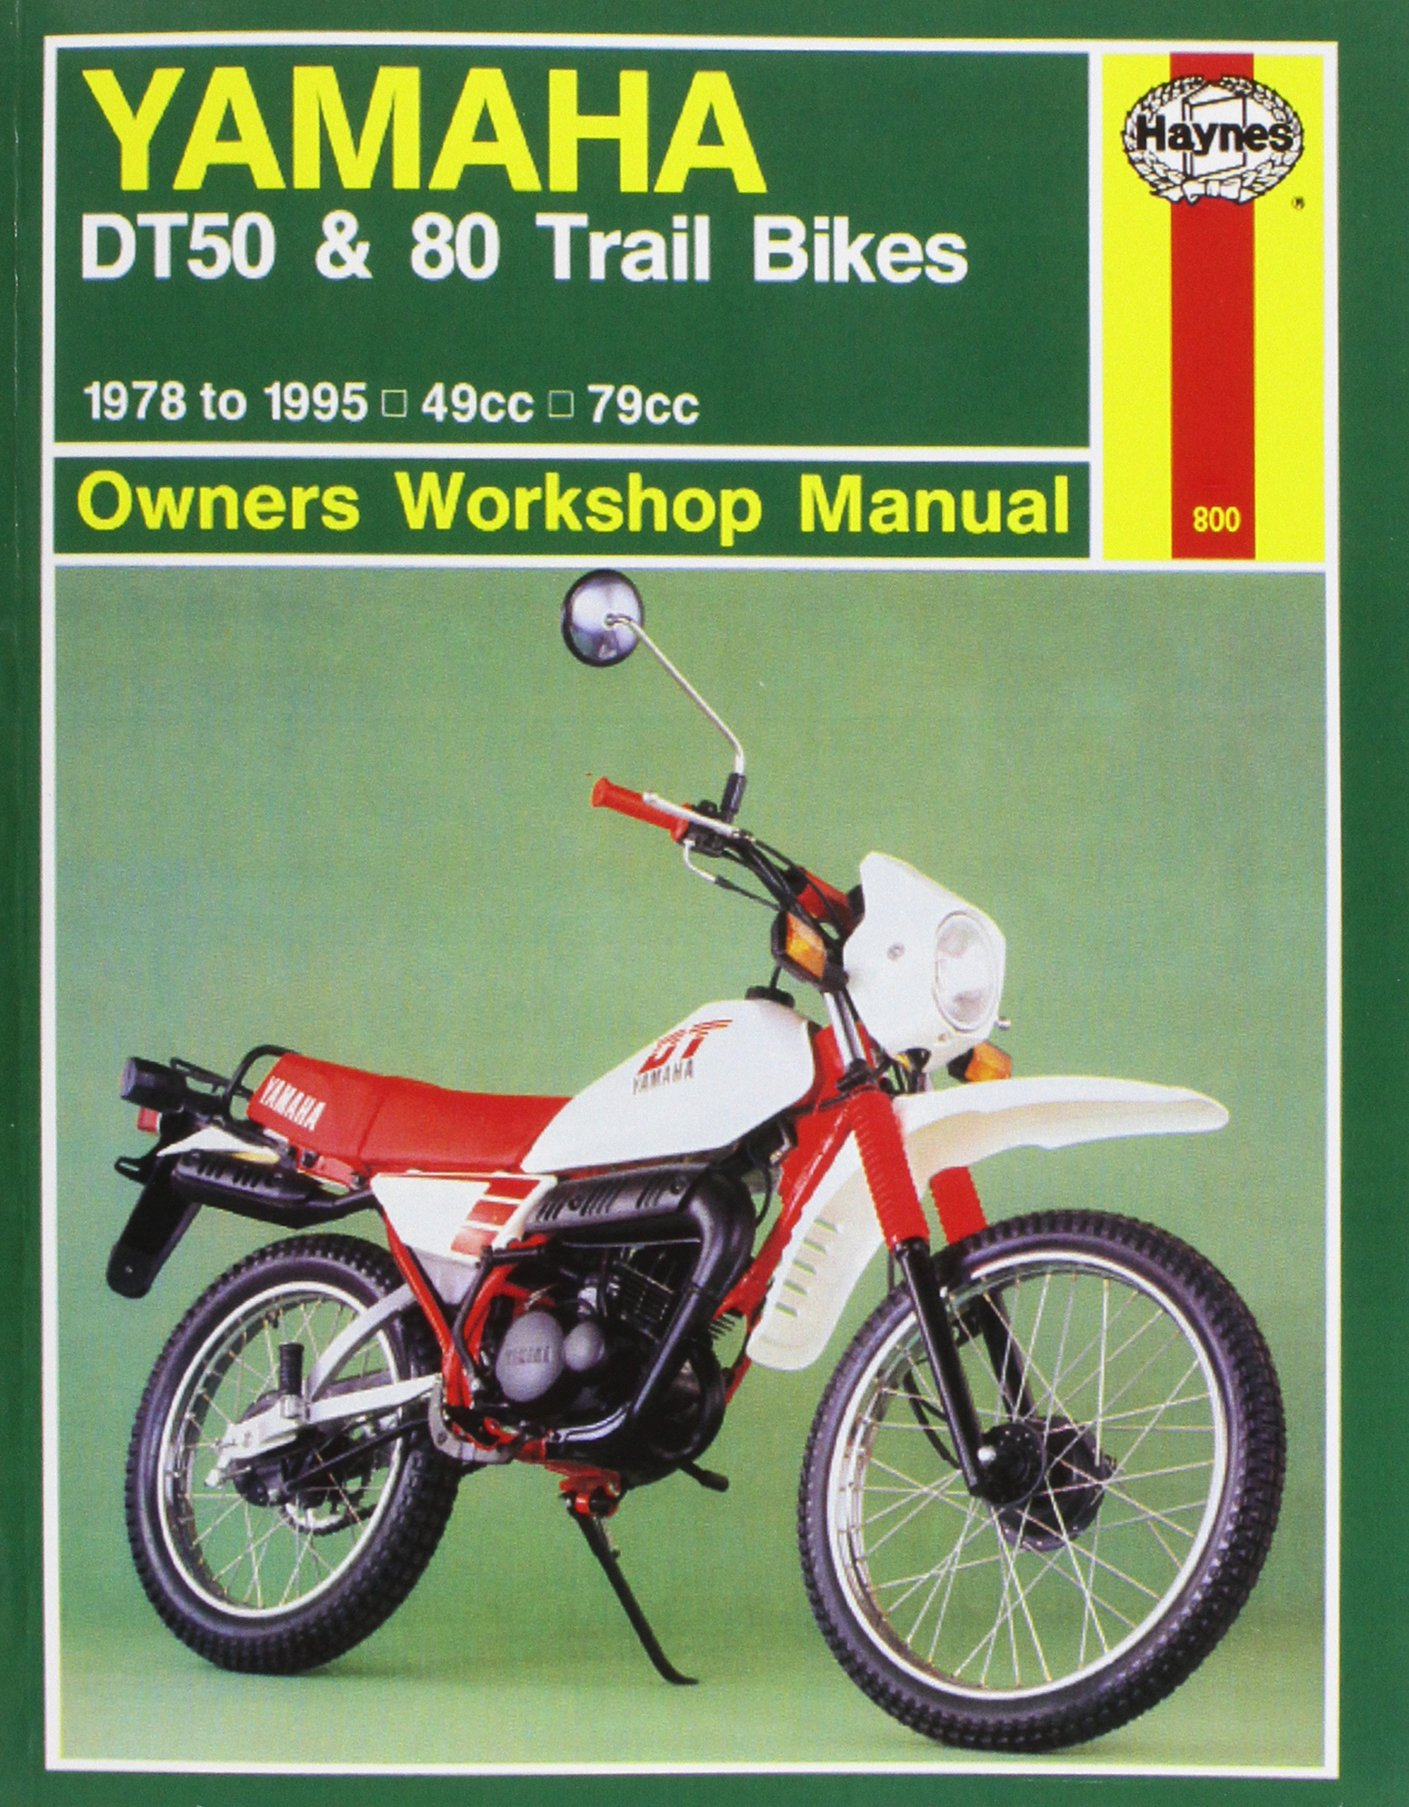 Yamaha DT50 and 80 Trail Bikes Owner's Workshop Manual (Haynes Owners Workshop Manuals)